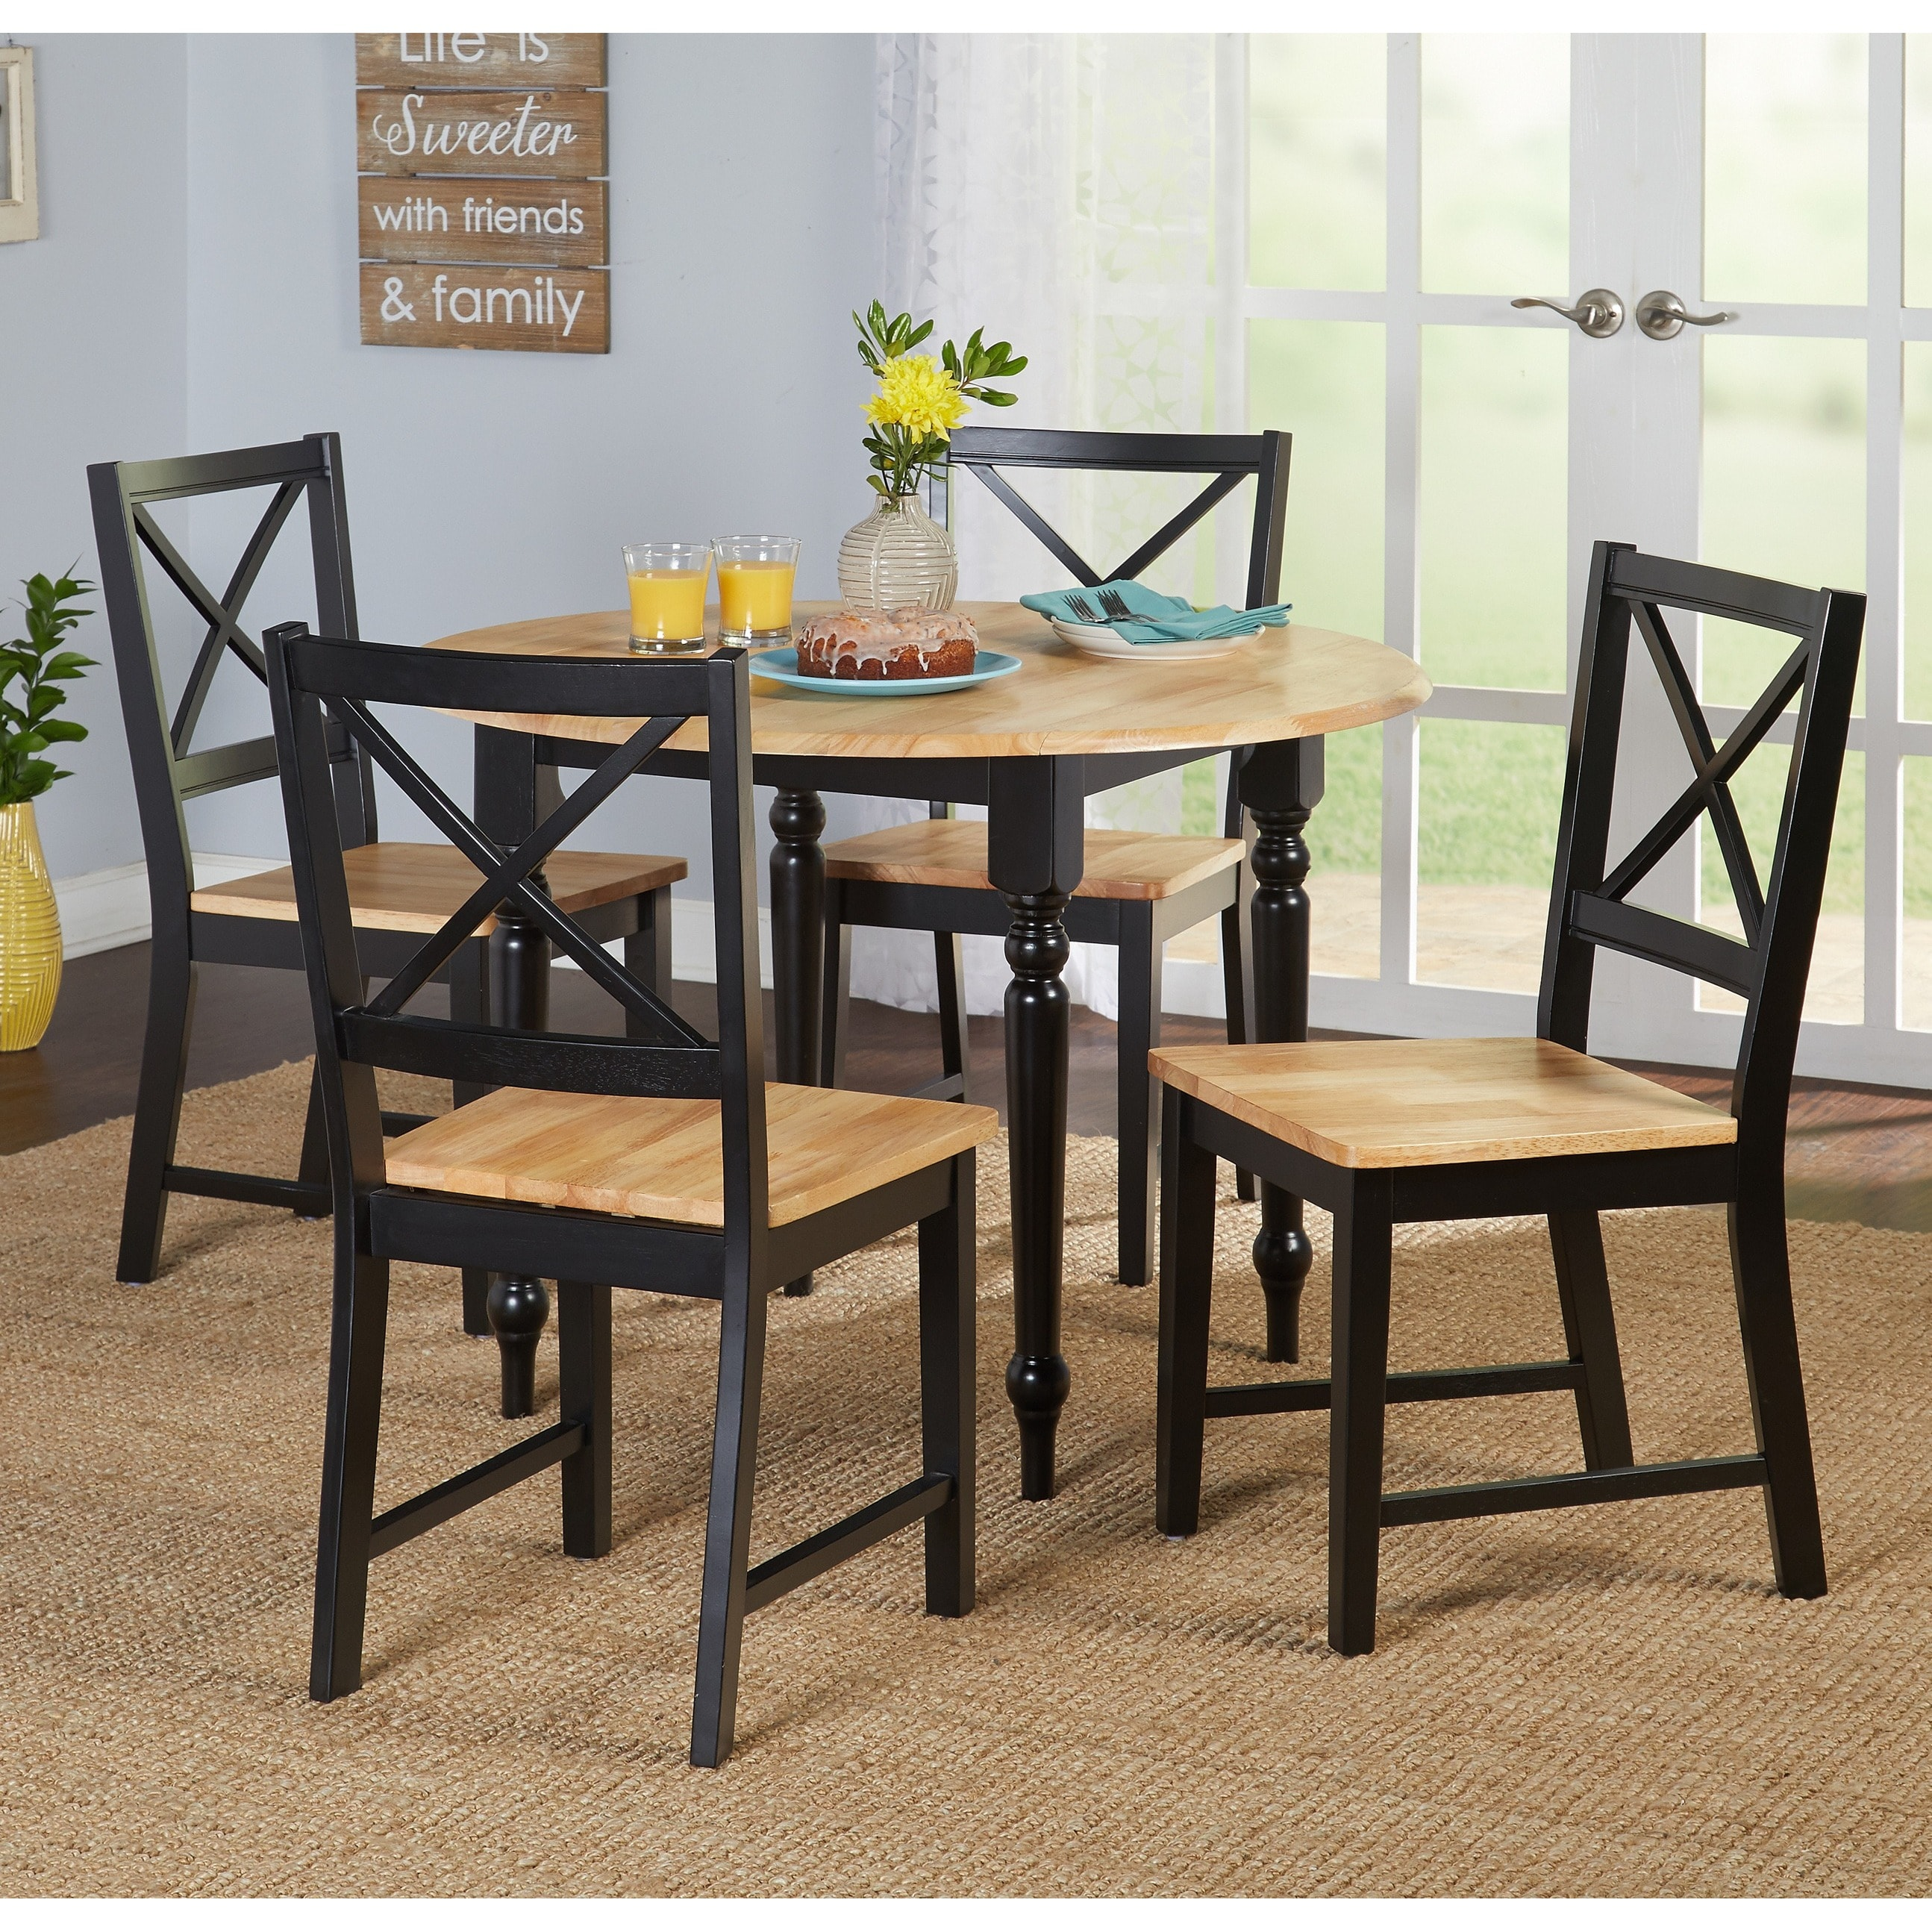 Virginia 5-Piece Dining Room Set, Multiple Colors by